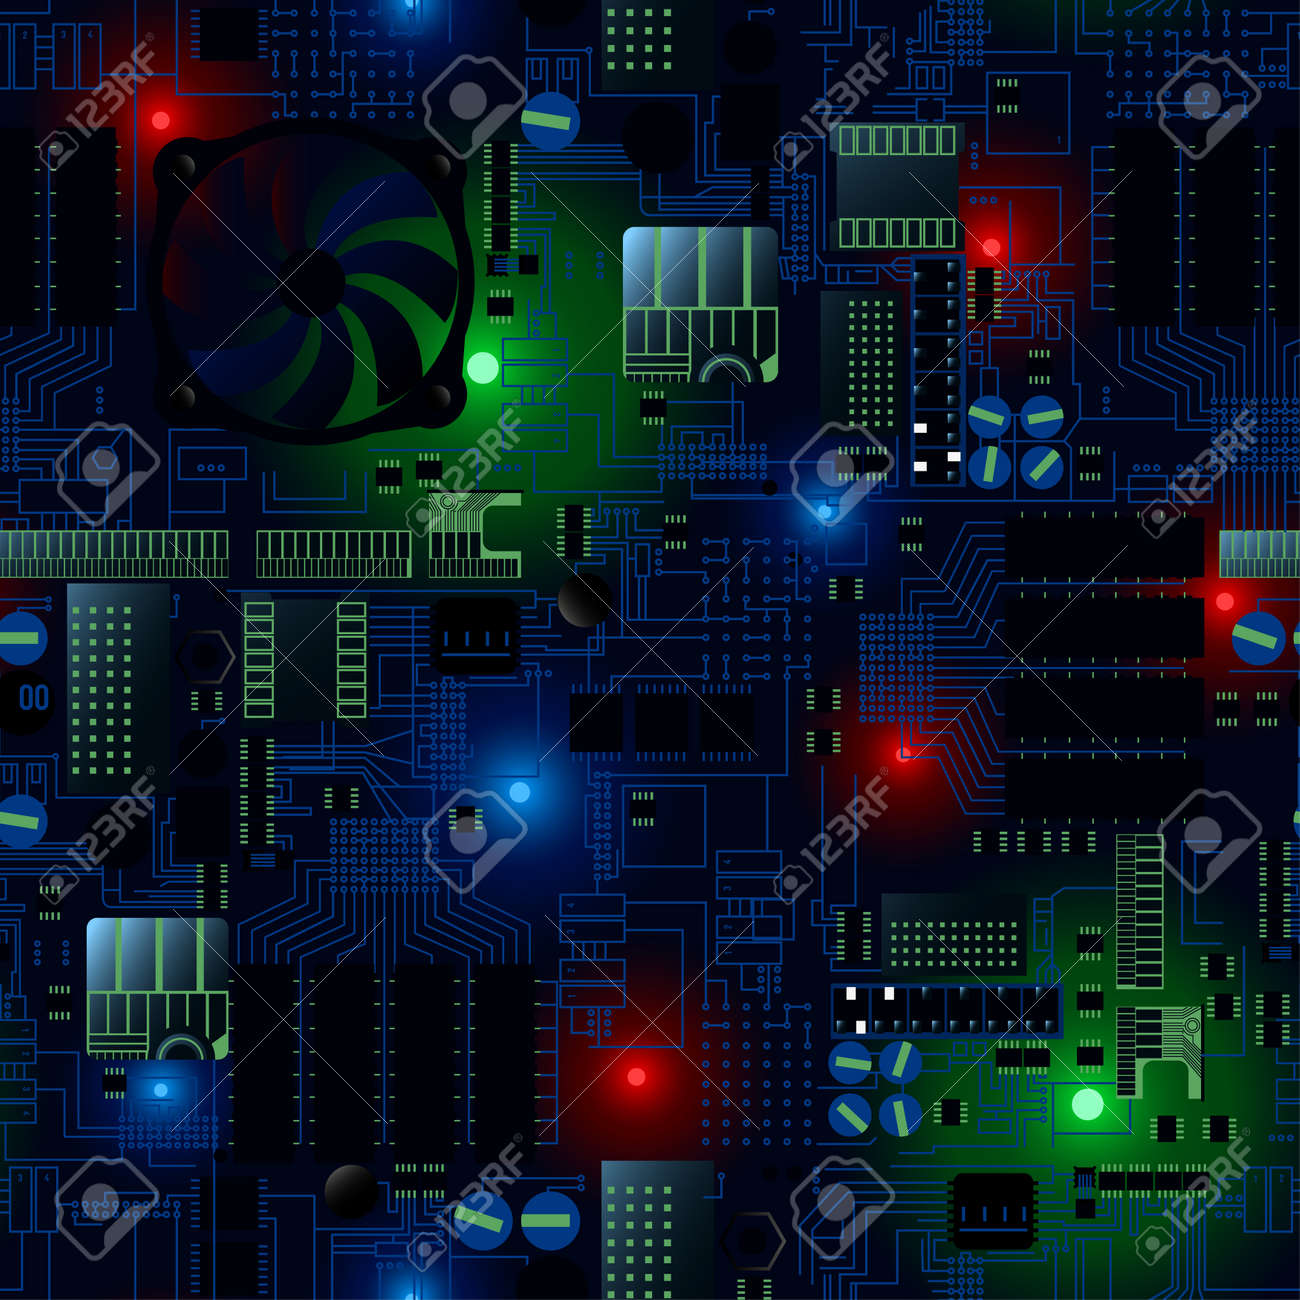 Awe Inspiring Circuit Board With Leds And Wires Seamless Pattern Royalty Free Wiring Digital Resources Funapmognl